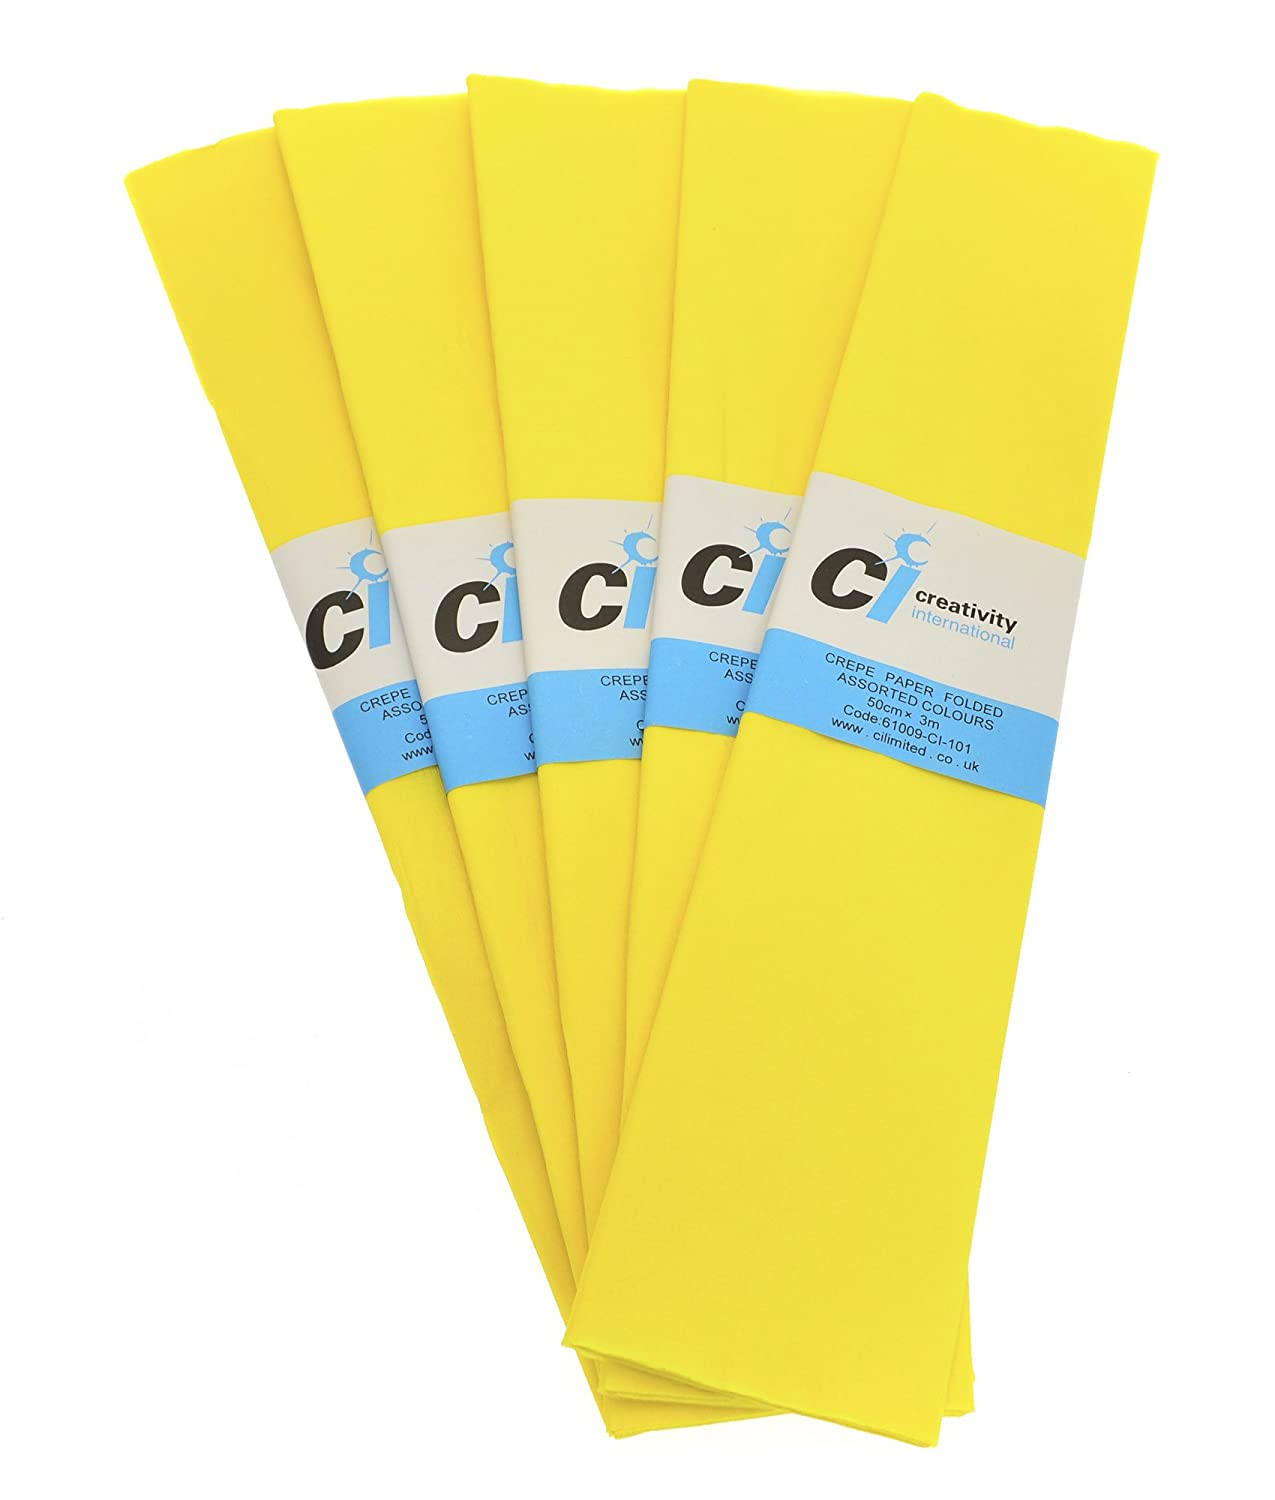 CI 10 Sheets Super Value Crepe Paper,Canary Yellow, Each Sheet Measures 50cm x 3m 6108-3